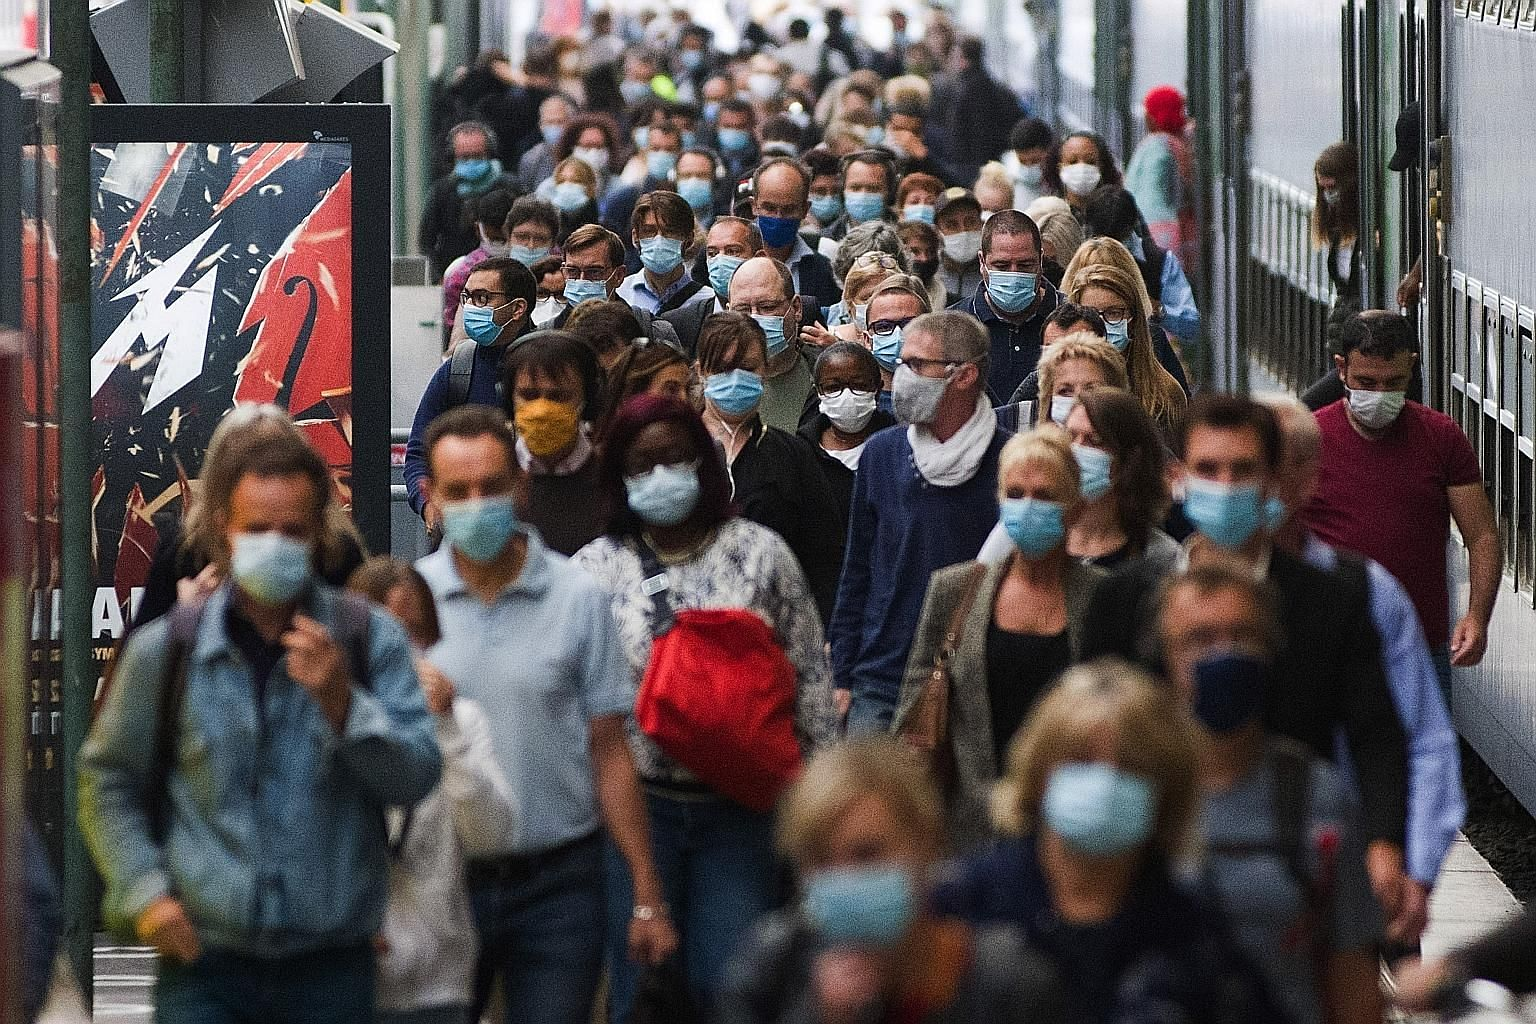 Commuters at Gare Du Nord railway station in Paris yesterday. Europe's tourism industry reopened last month, and prime tourist destinations like France, Spain and Malta have recently reported higher Covid-19 infection rates than countries like Britai